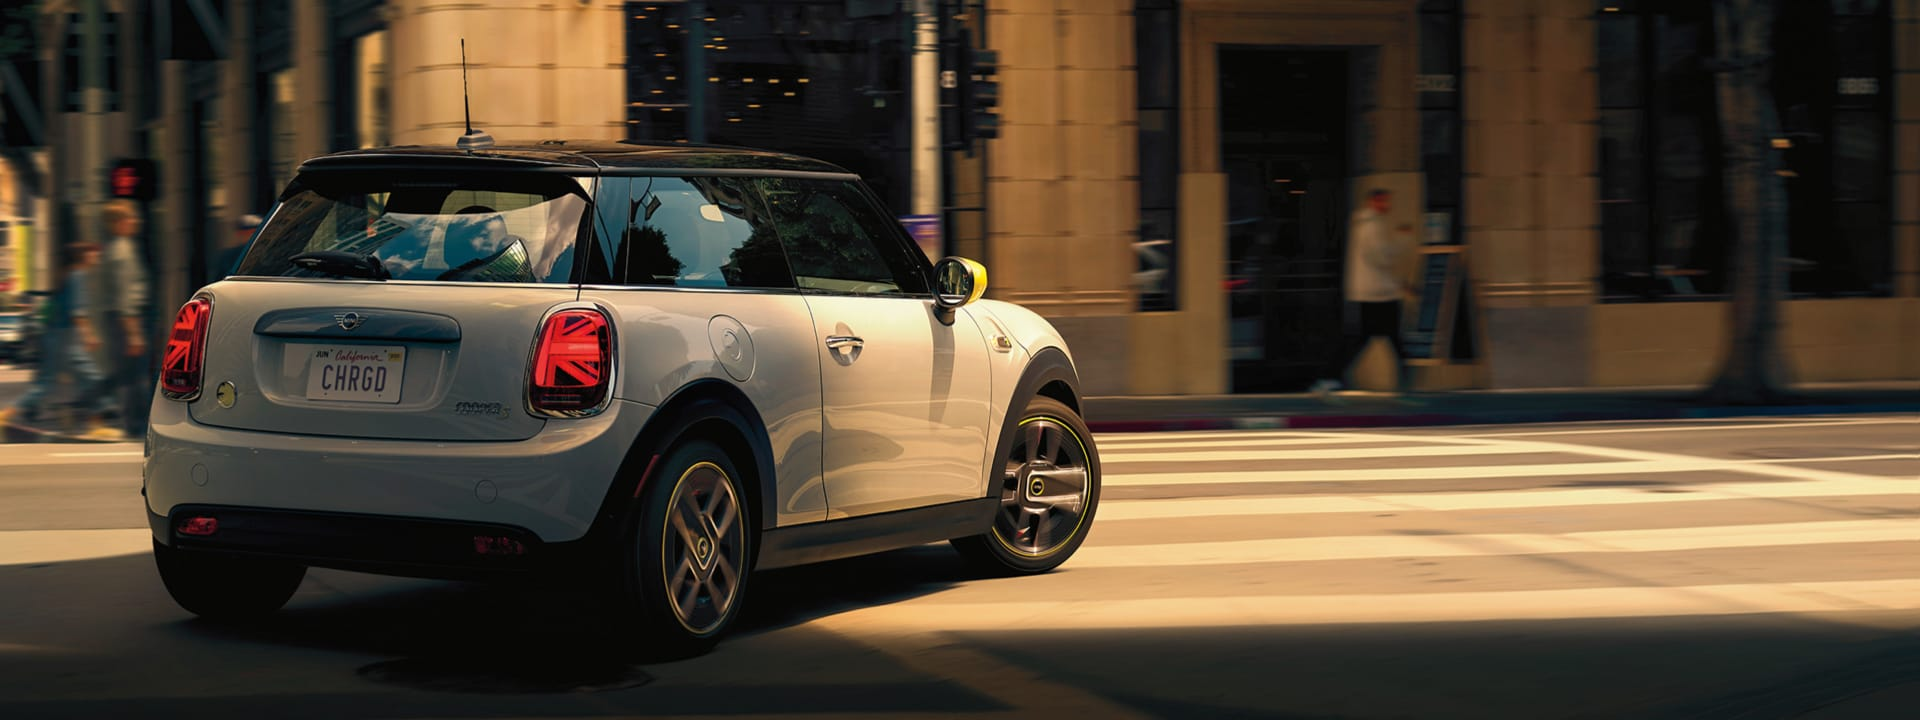 MINI Electric Hardtop 2 Door – white silver with yellow trim and black hardtop driving on street.